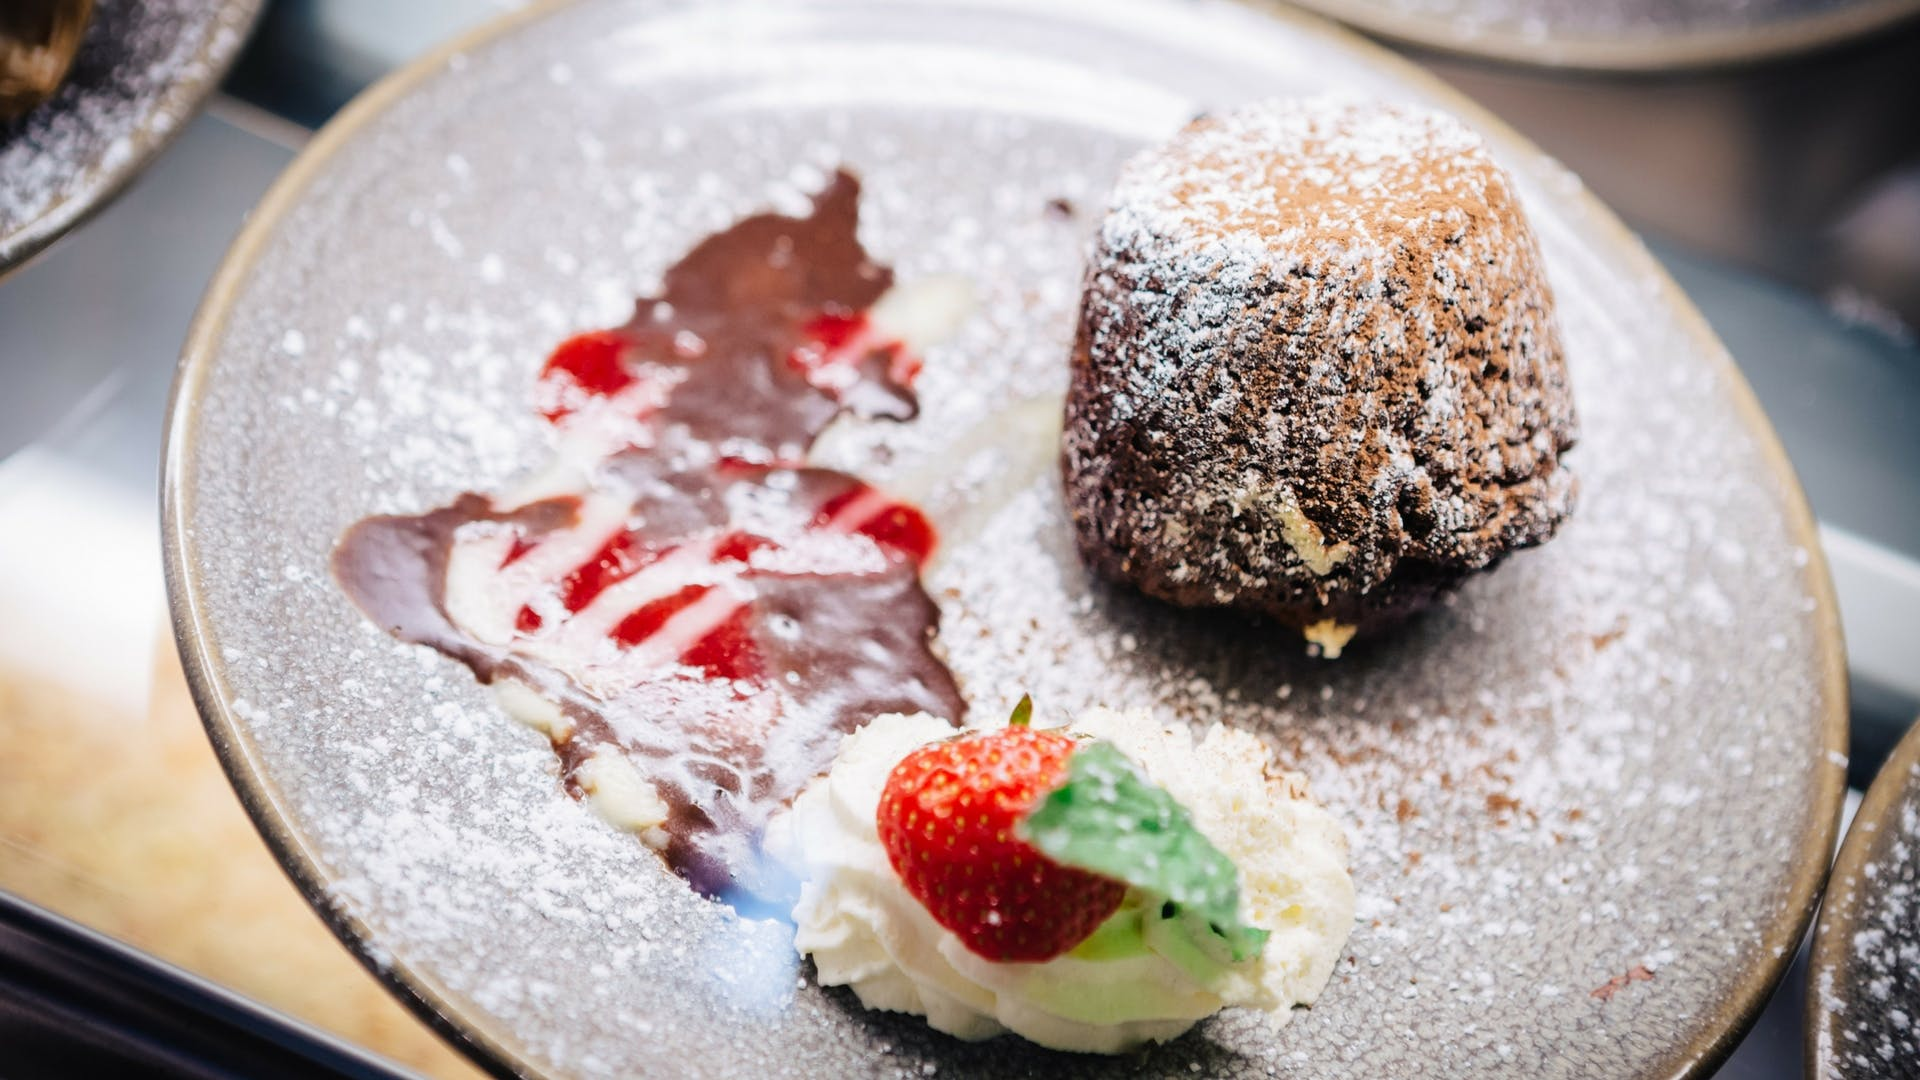 Homemade delicious desserts at Gleesons Restaurant & Rooms, Roscommon